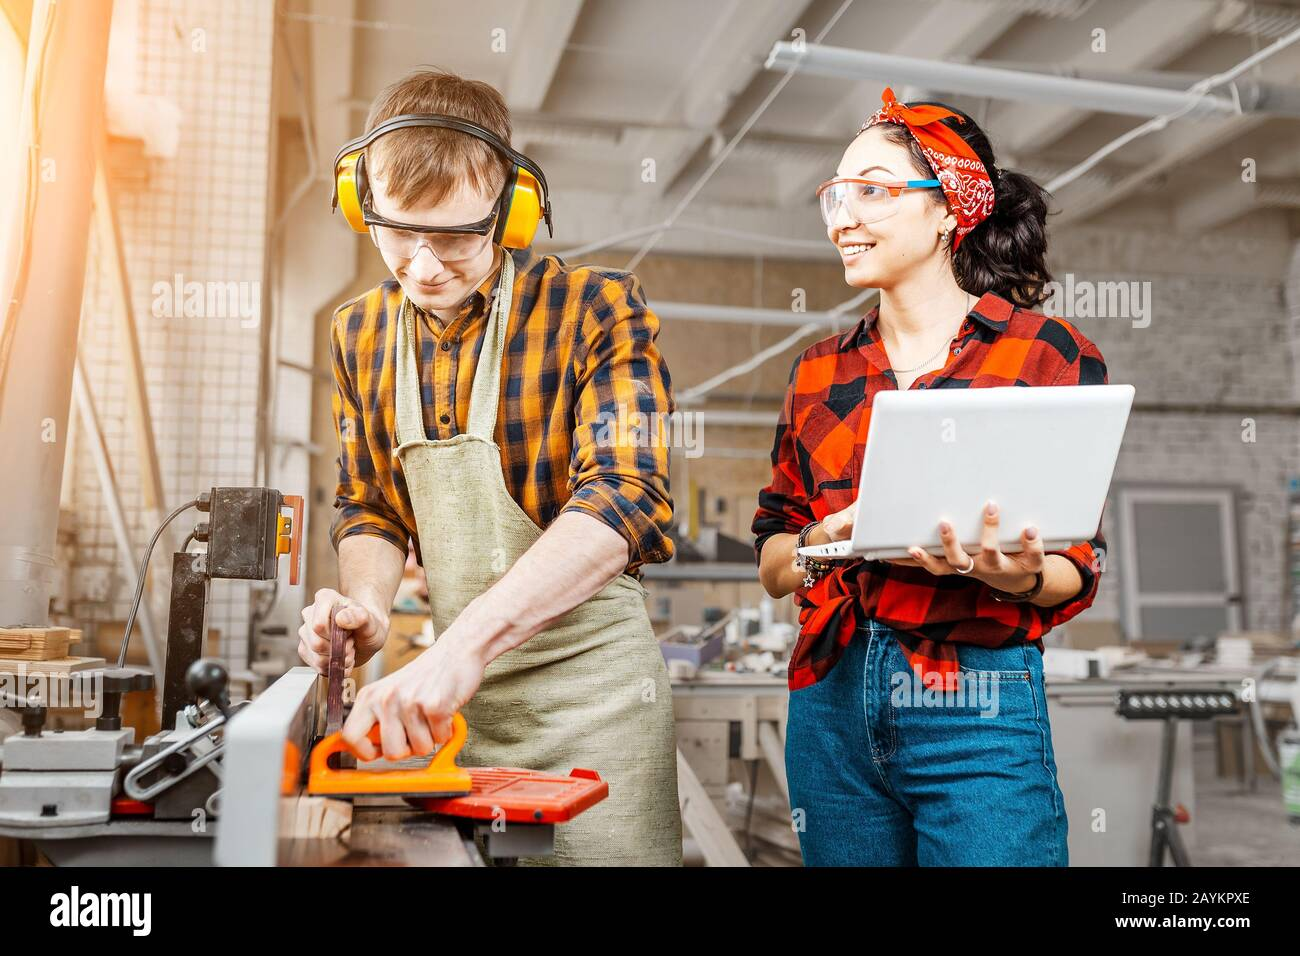 Asian woman with a laptop and a man with a circular saw working in a factory or workshop Stock Photo